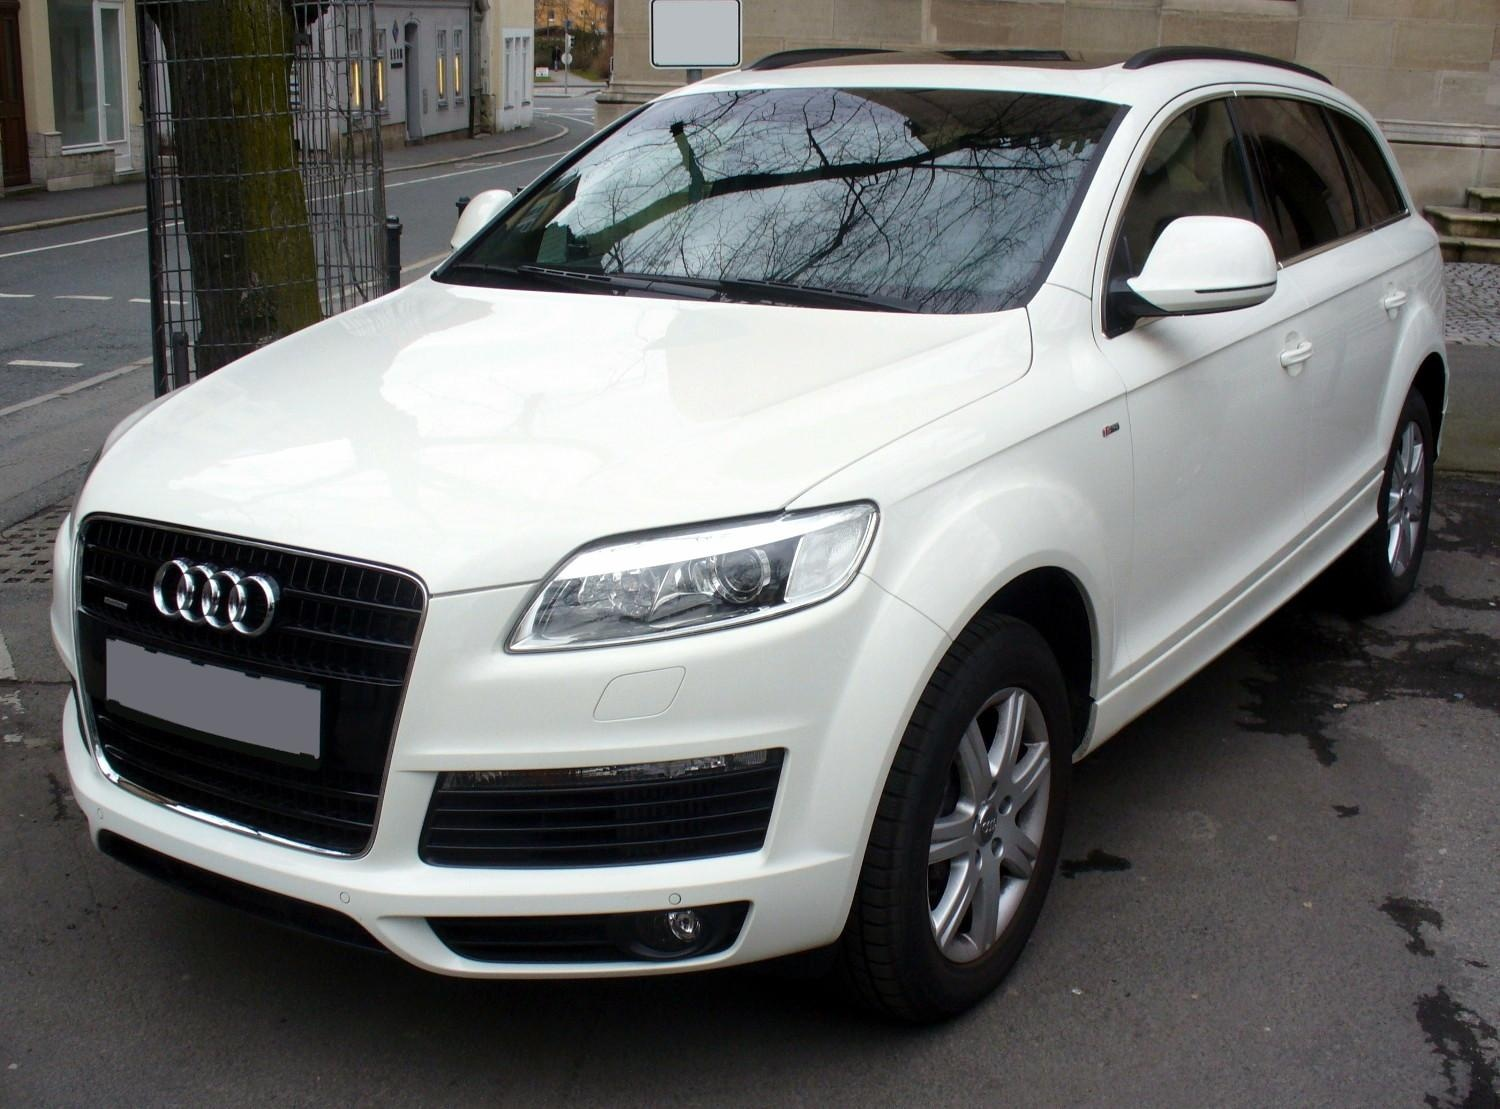 Audi Q7 Modified Best Of Fileaudi Q7 S Line 3 0 Tdi Quattro Tiptronic CallaweiaŸ Jpg-2305 Of Inspirational Audi Q7 Modified